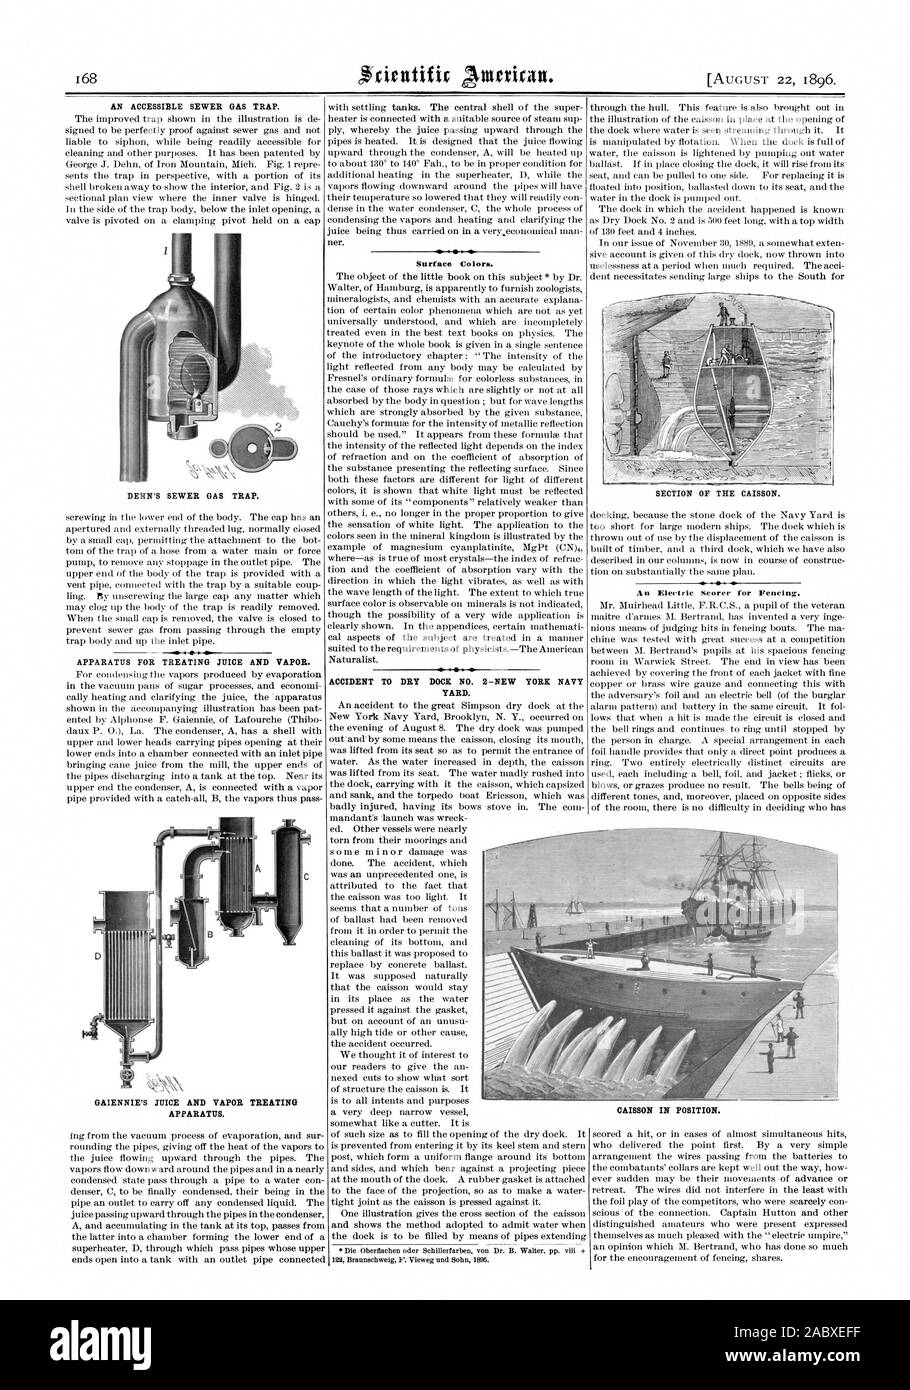 AN ACCESSIBLE SEWER GAS TRAP. DEHN'S SEWER GAS TRAP. APPARATUS FOR TREATING JUICE AND VAPOR. Surface Colors. ACCIDENT TO DRY DOCK NO. 2—NEW YORK NAVY YARD. SECTION OF THE CAISSON. An Electric Scorer for Fencing. GAIENNIE'S JUICE AND VAPOR TREATING APPARATUS. CAISSON IN POSITION., scientific american, 1896-08-22 Stock Photo